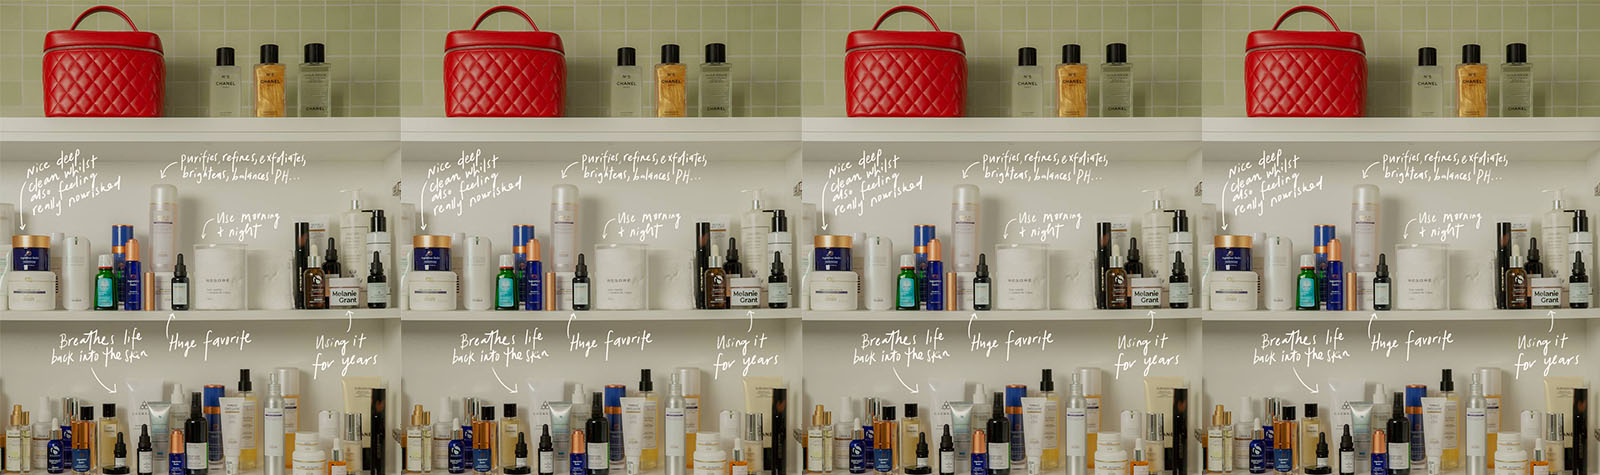 Who What Wear · The Skincare Products We Should All Use, According to a Chanel Skin Expert